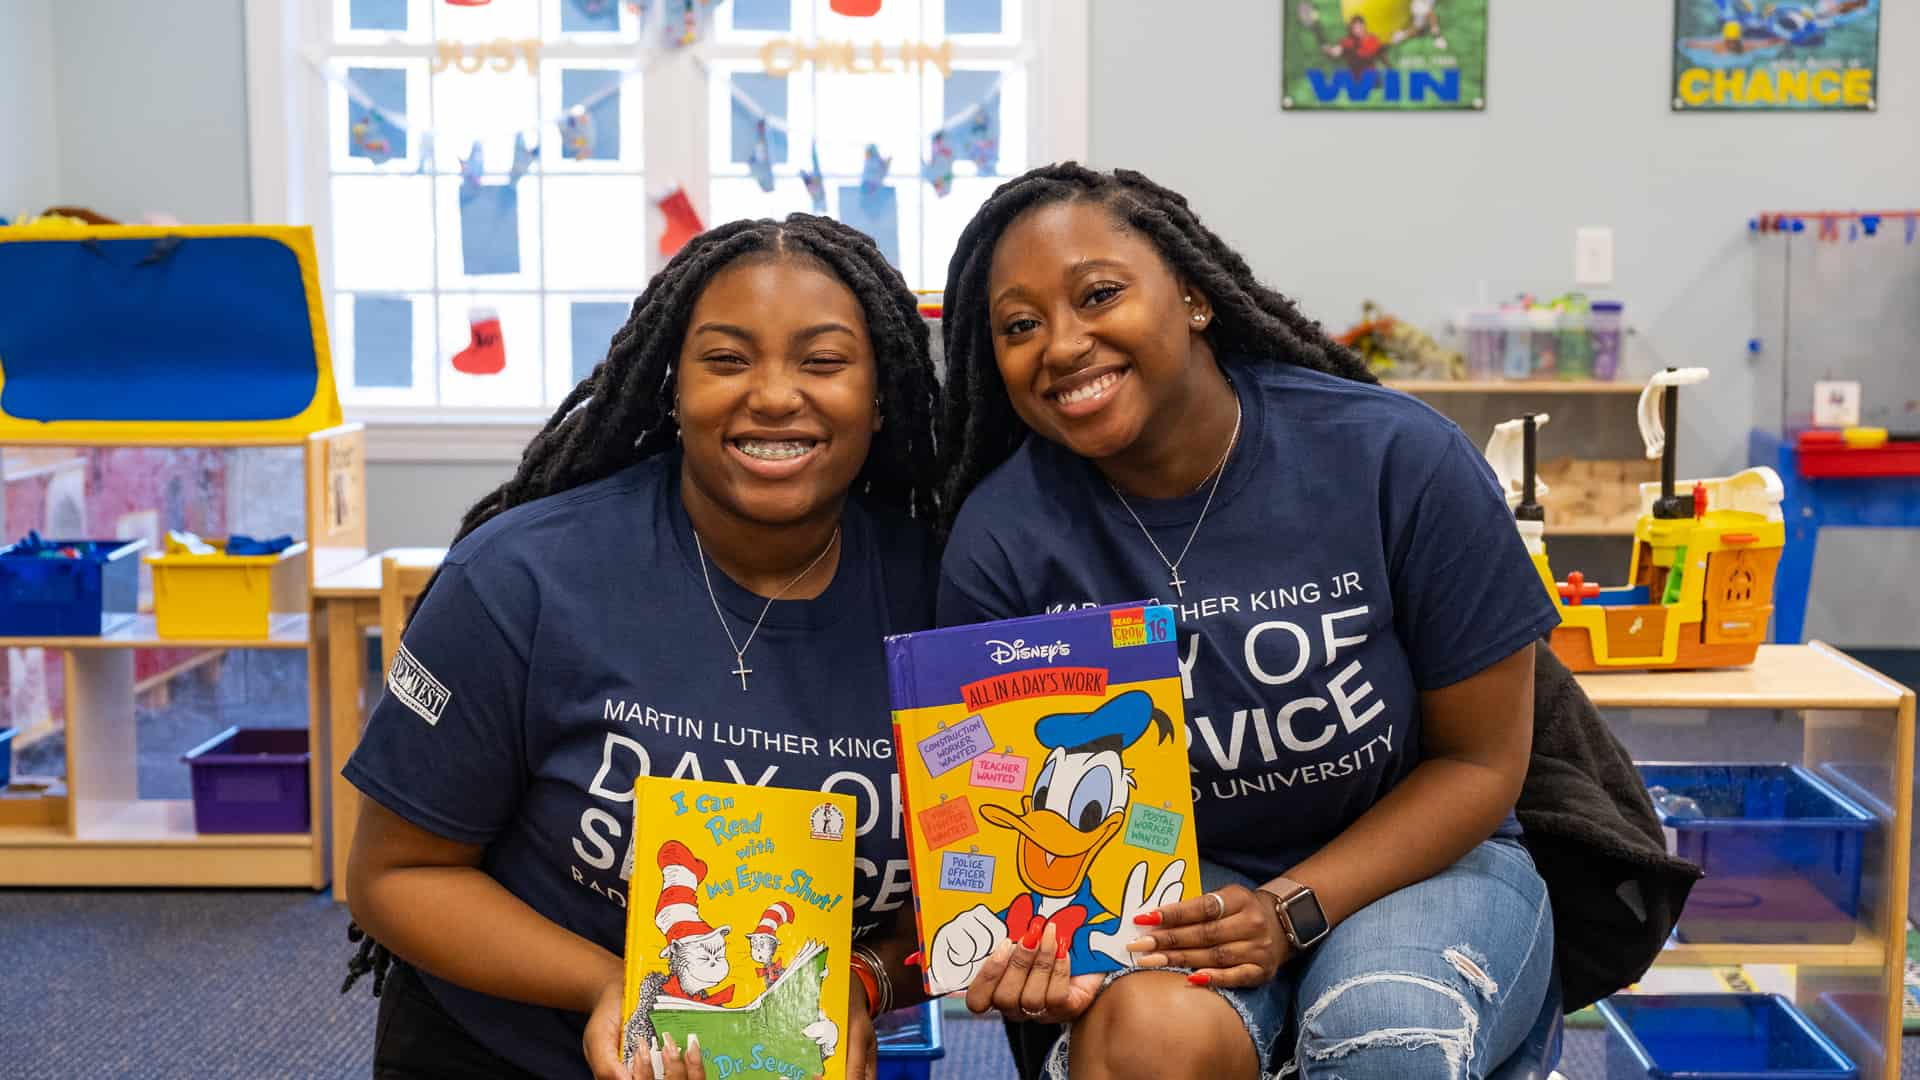 Students participating in the 2020 Radford University MLK Day of Service. Photo courtesy of the Radford University Center for Diversity and Inclusion